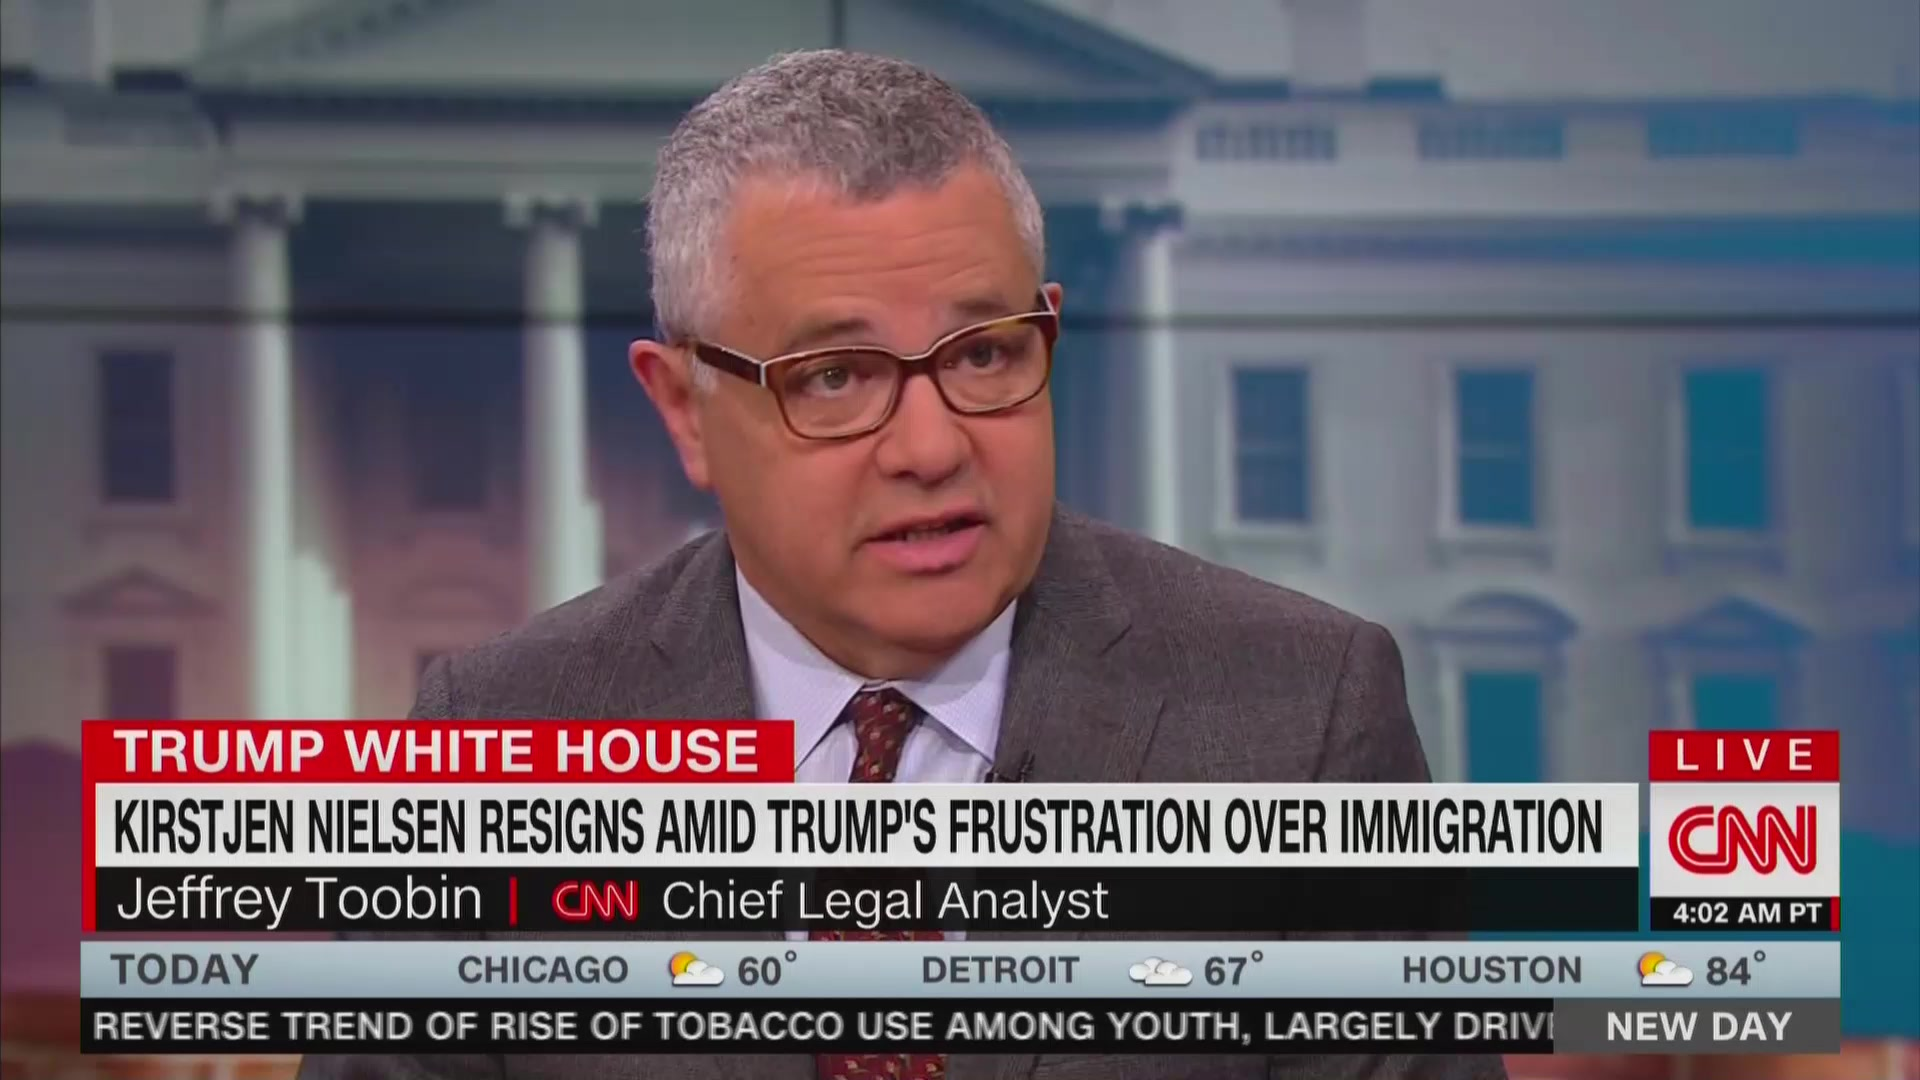 CNN's Jeffrey Toobin: Kirstjen Nielsen Will Be Remembered as the 'Woman Who Put Children in Cages'